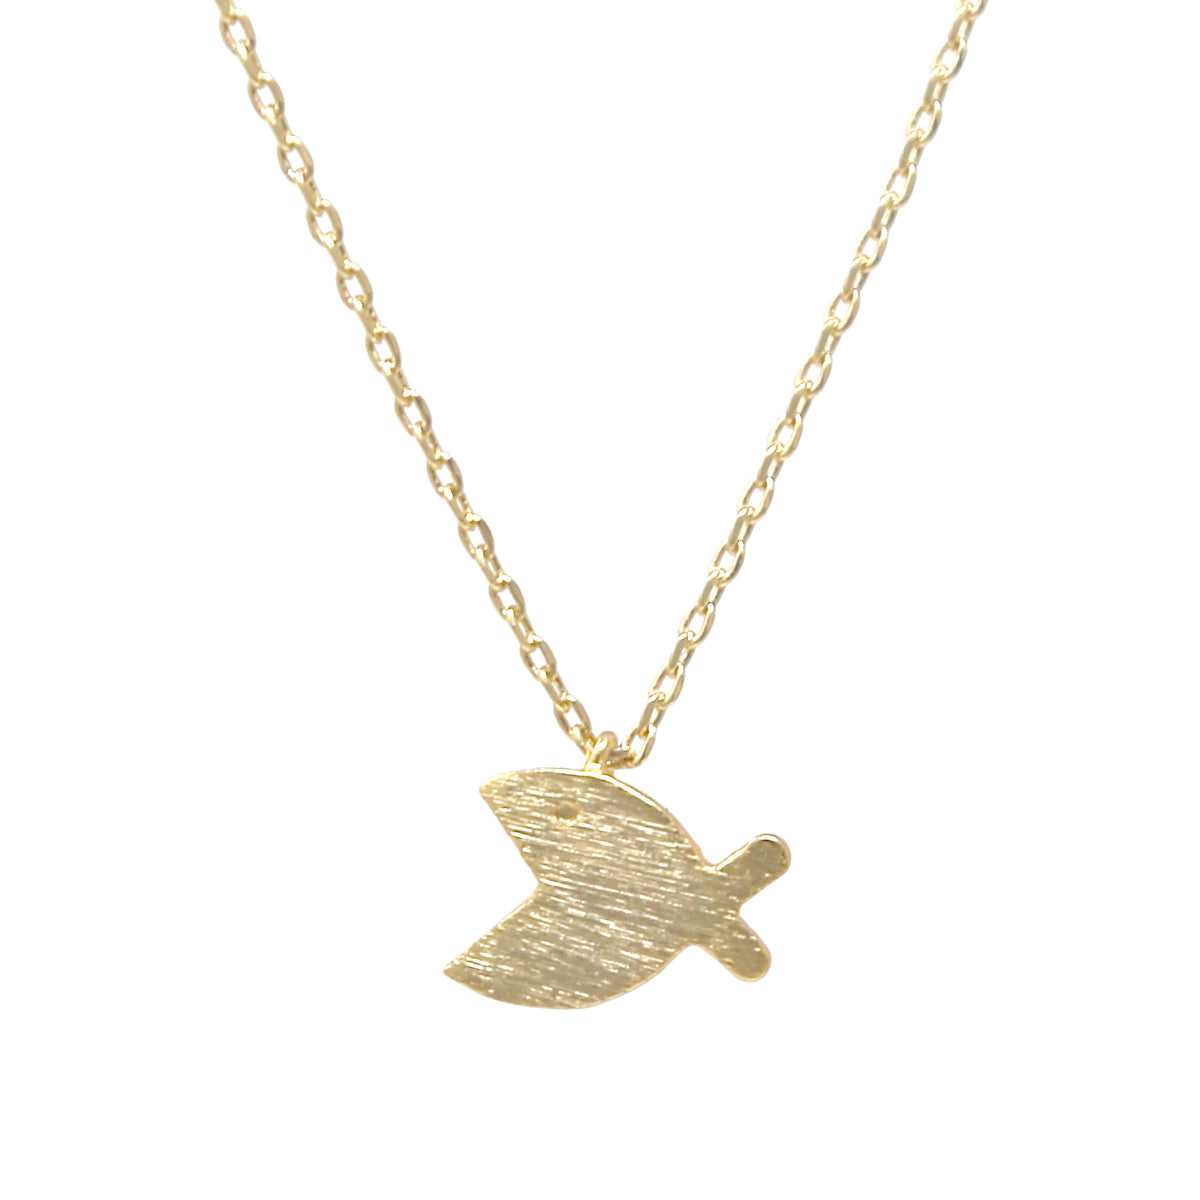 Fish Brushed Metal Pendant Simple Chain Short Necklace